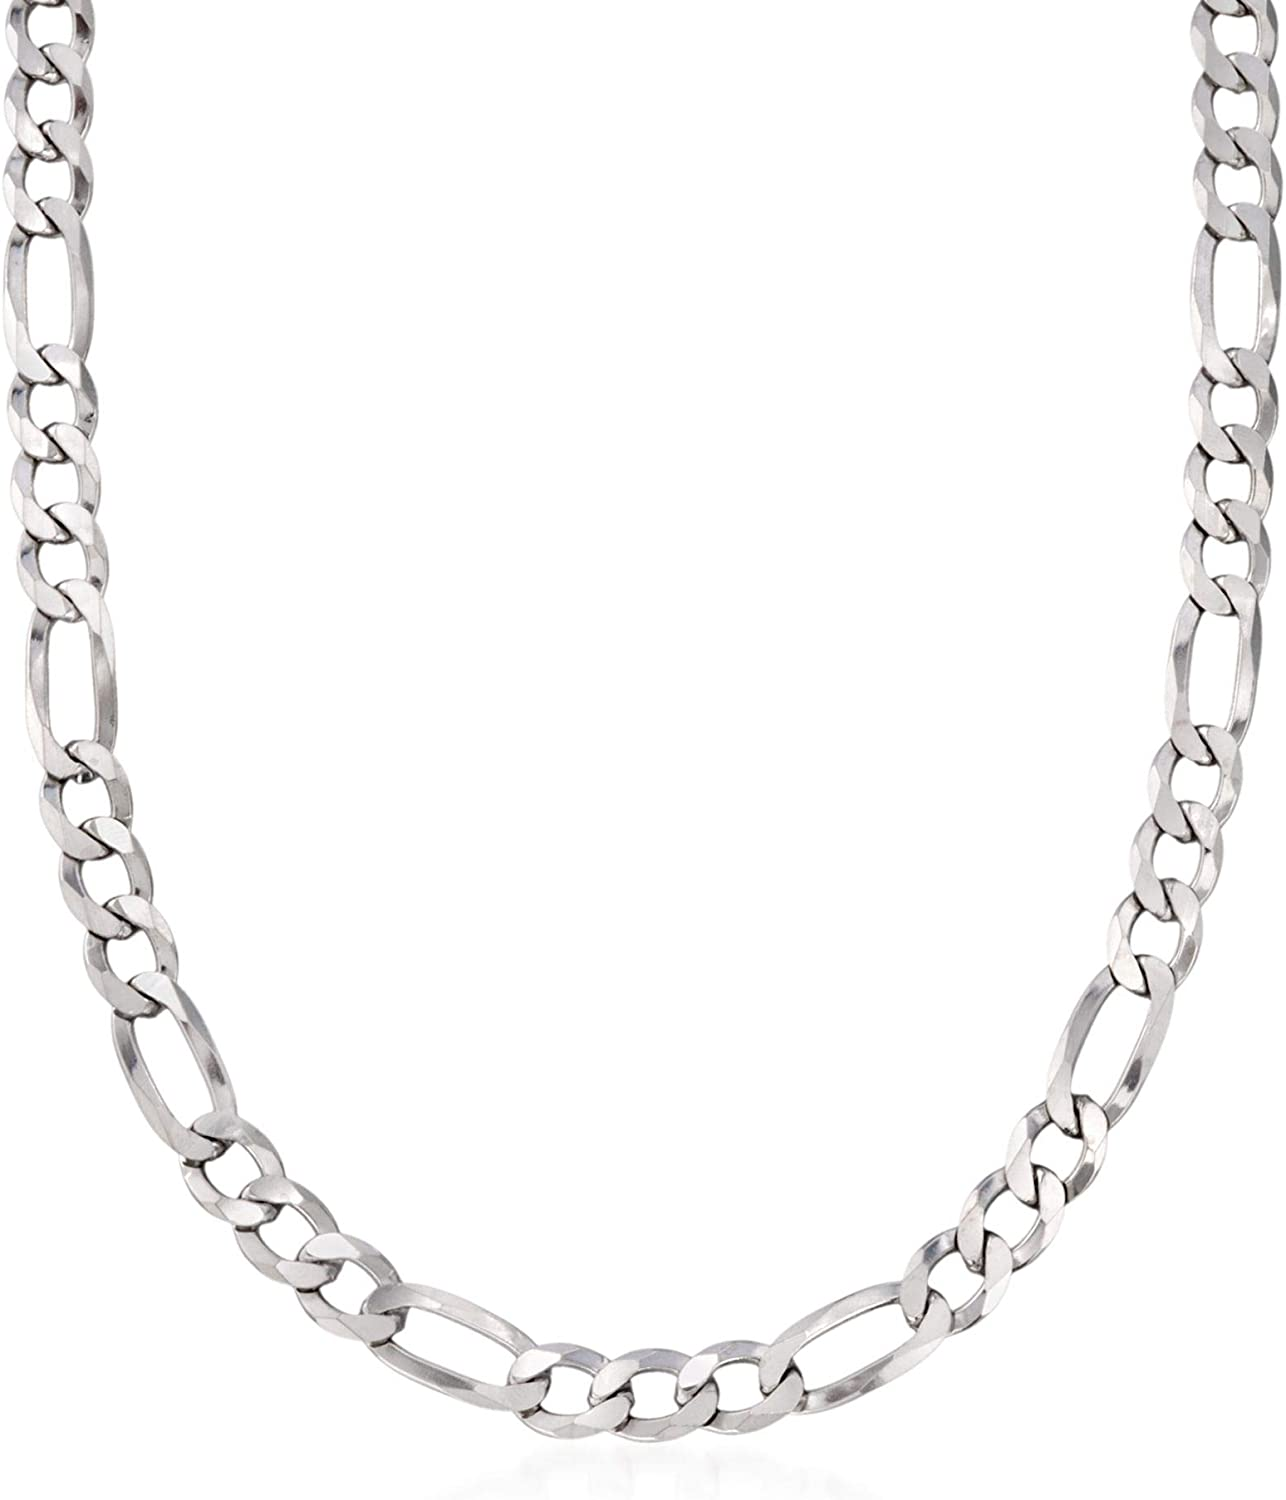 Ross-Simons Mens 7.8mm Sterling Silver Figaro Link Necklace